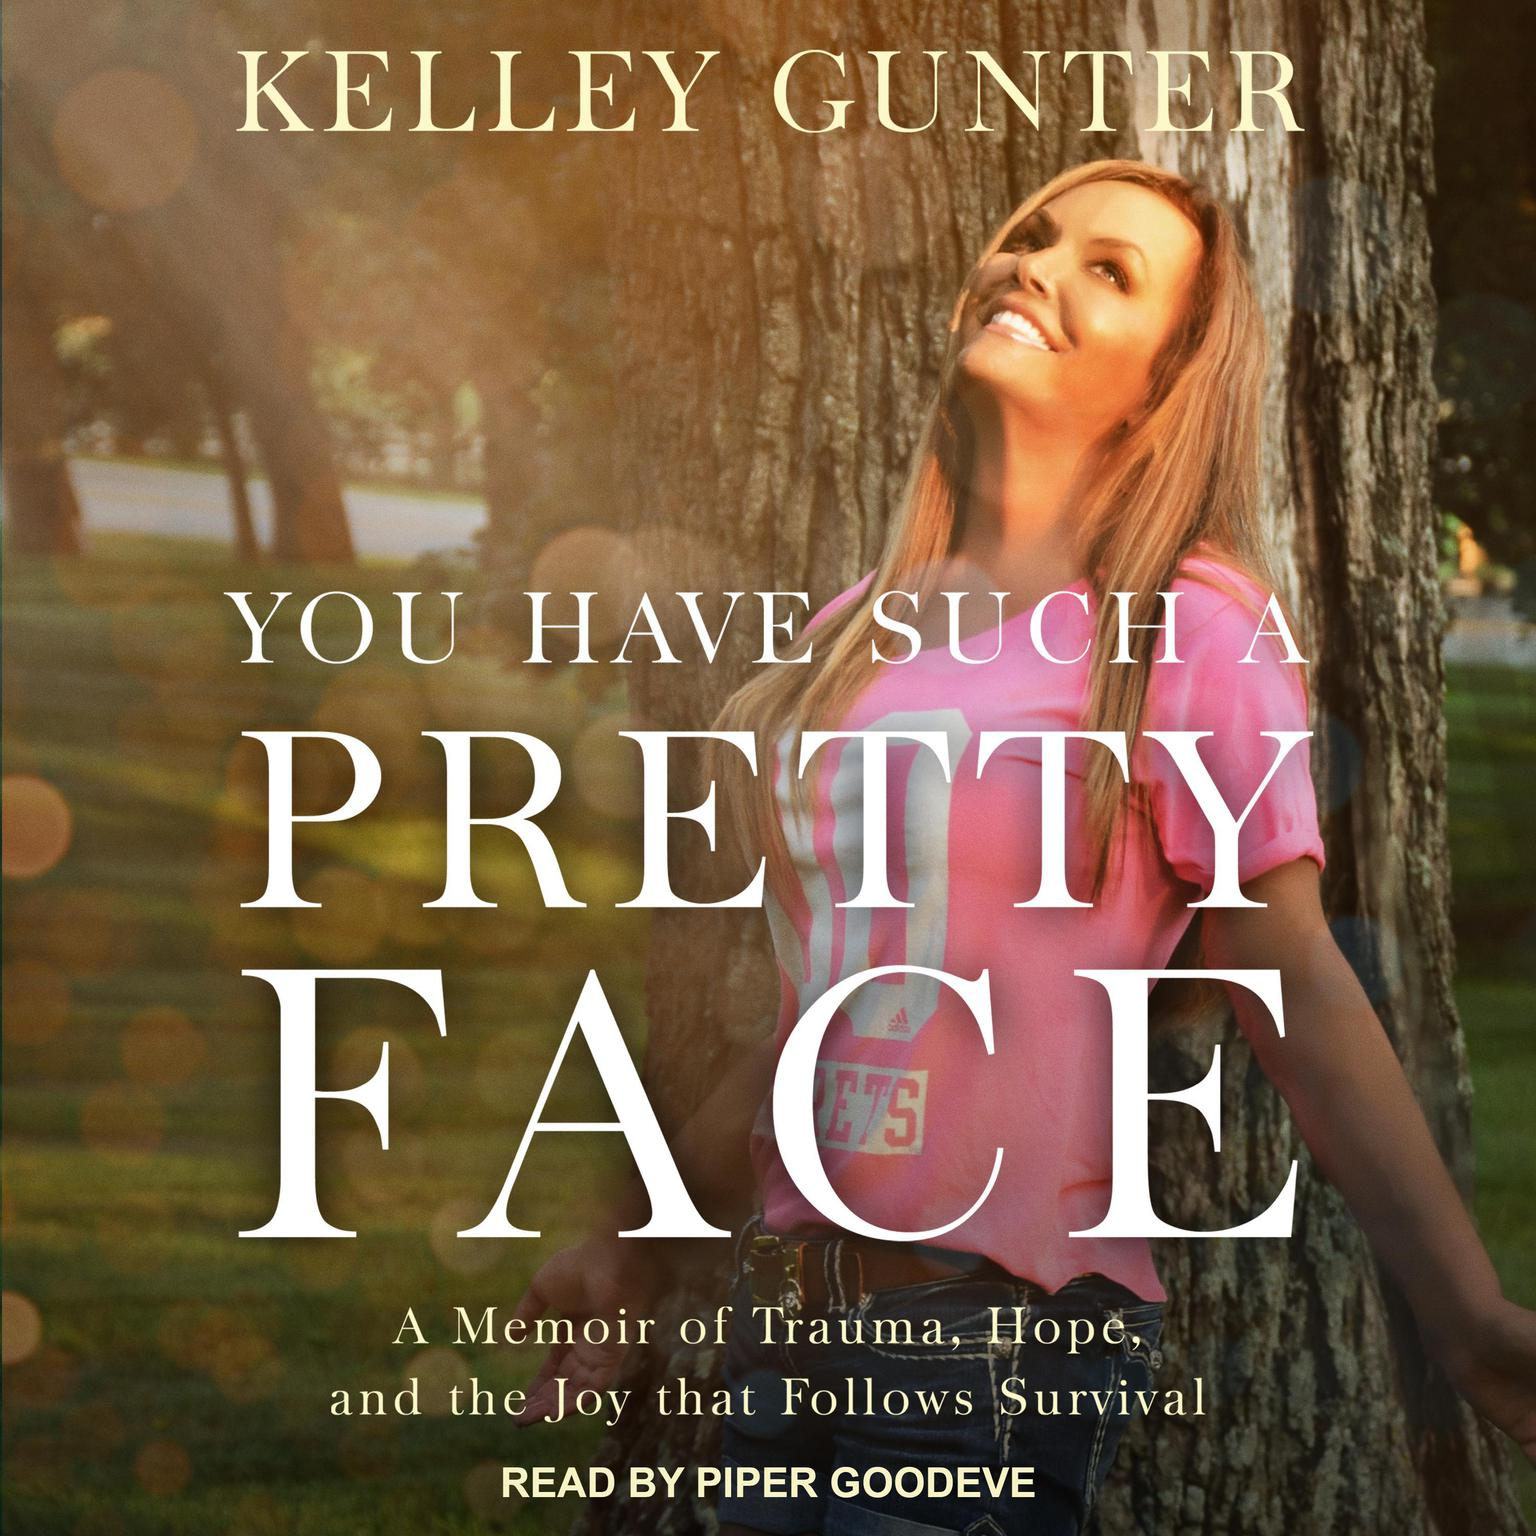 Printable You Have Such A Pretty Face: A Memoir of Trauma, Hope, and the Joy that Follows Survival Audiobook Cover Art